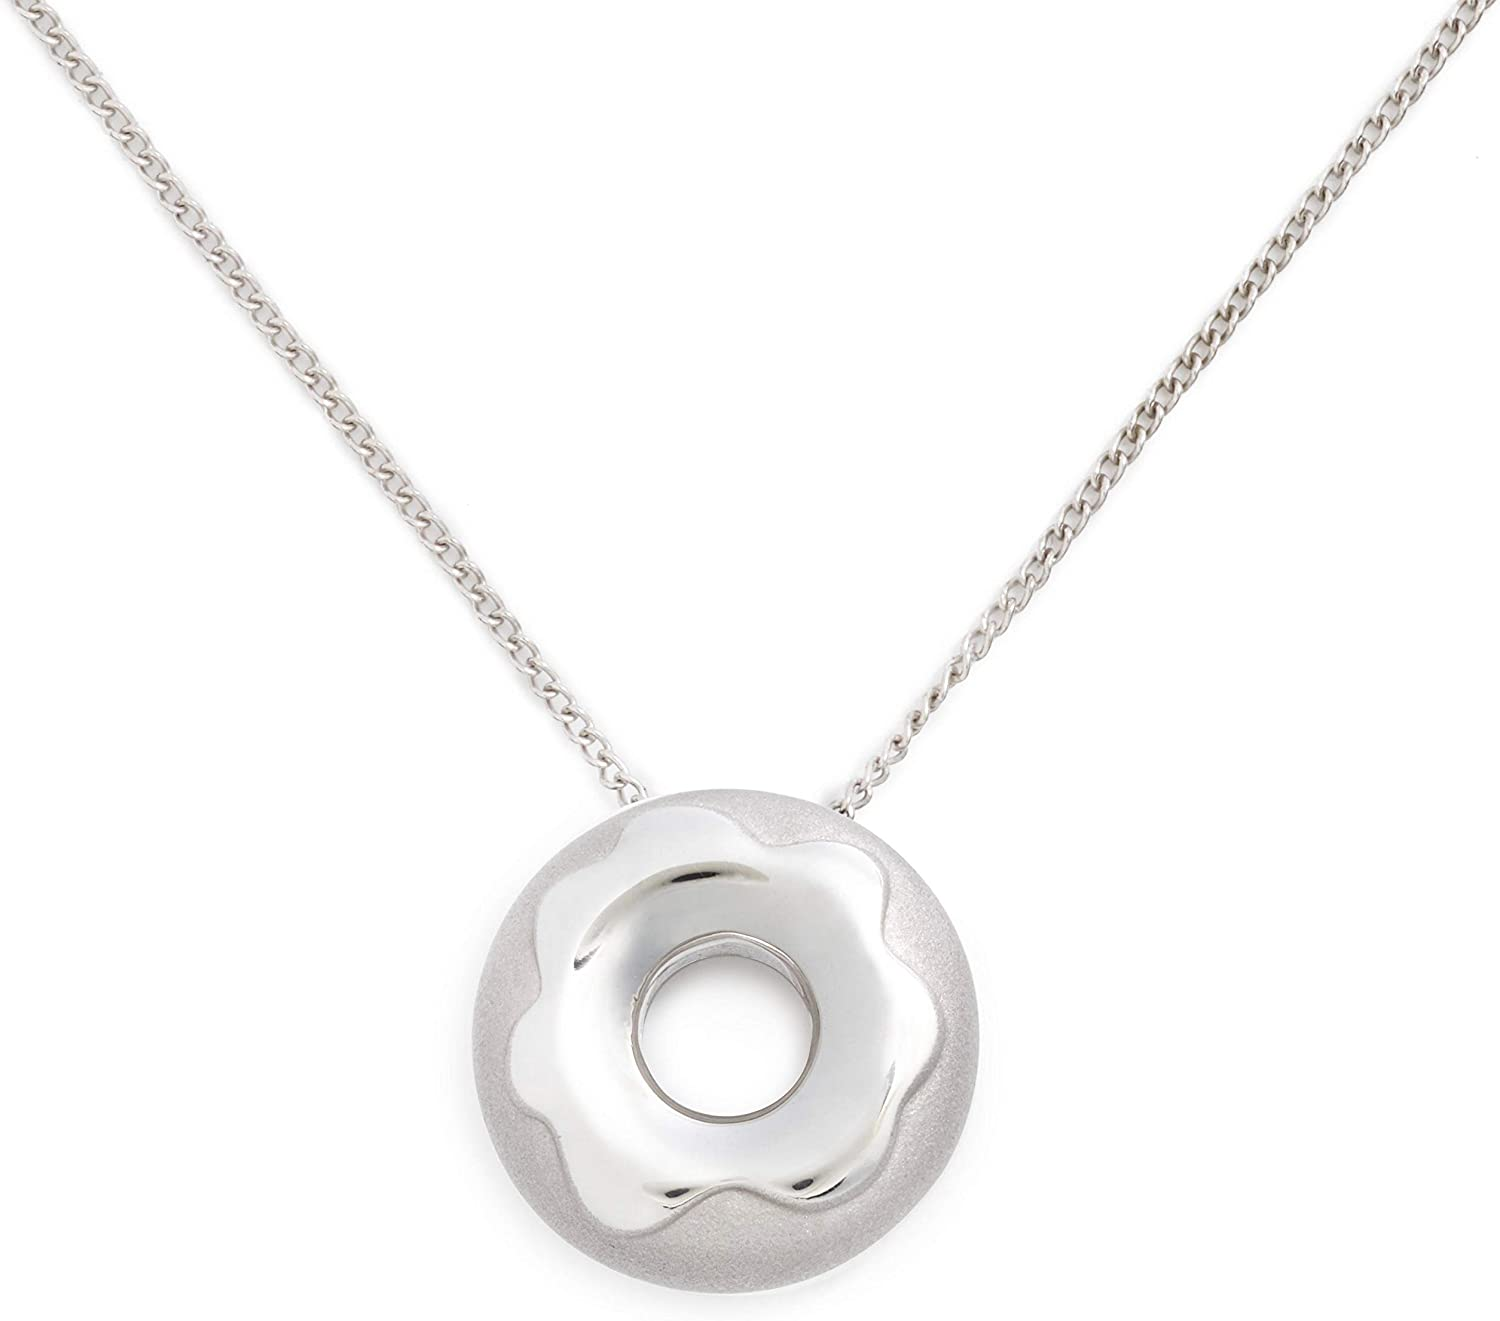 Delicacies Glazed Doughnut Necklace Jewelry, Sterling Silver, Food Jewelry for Food Lovers, Chefs, Cooks and Bakers